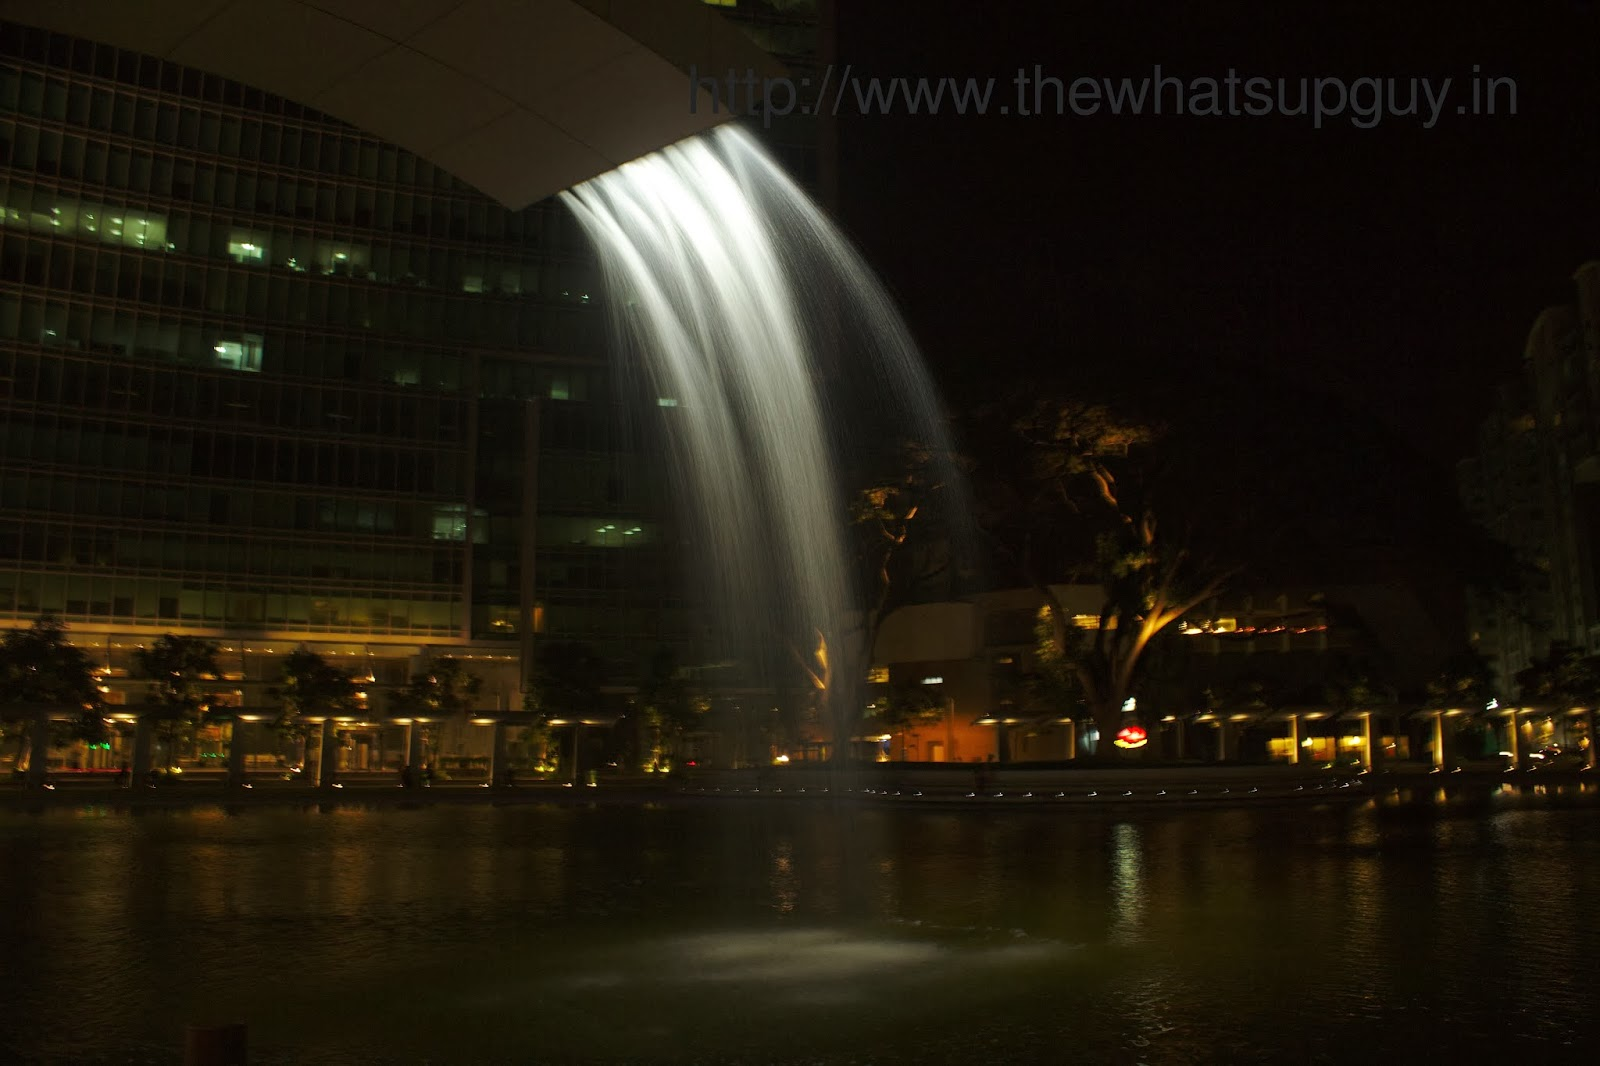 Fountain At Orion Mall Bangalore In The Night